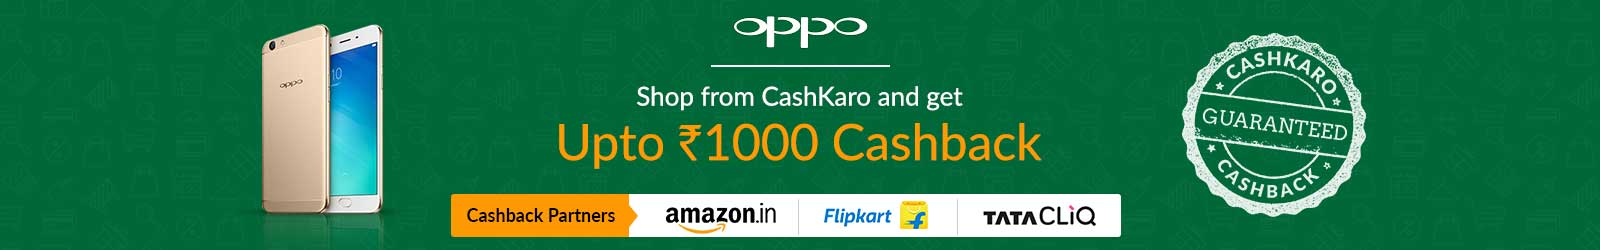 Oppo Mobile Price List, Offers: 60% Off   Low Price on All